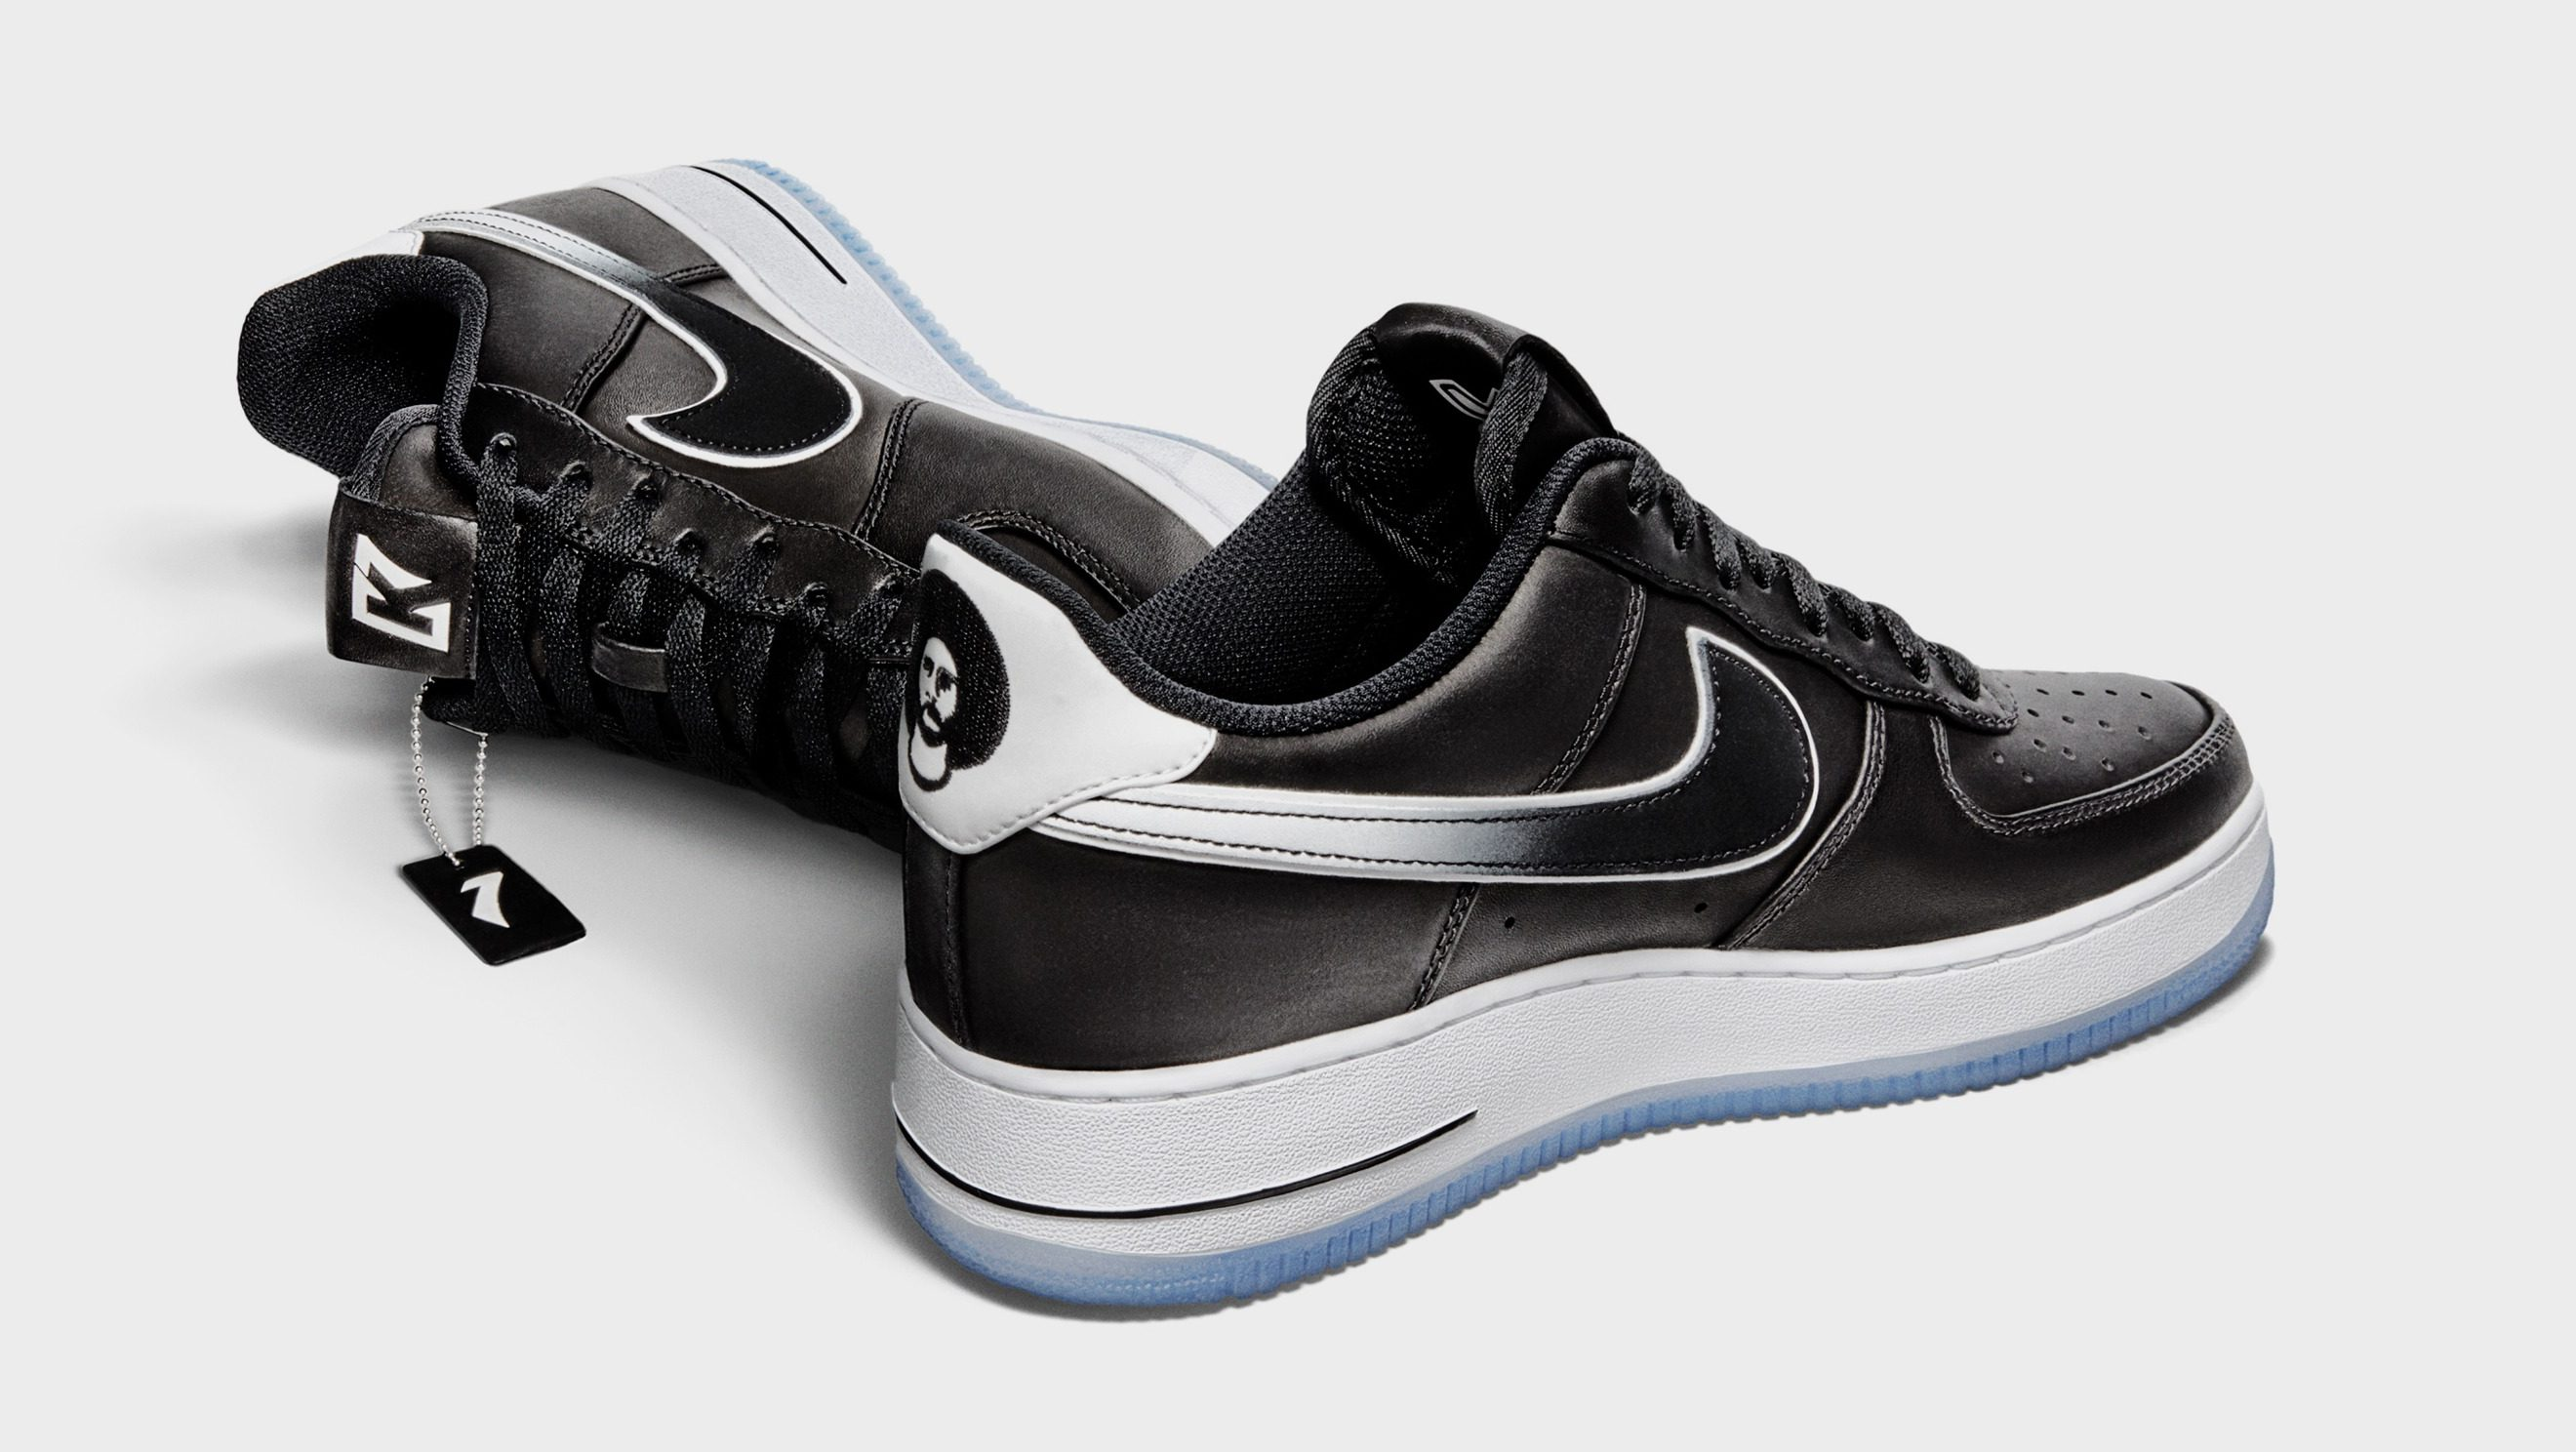 A product shoe of the Nike Air Force 1 Colin Kaepernick